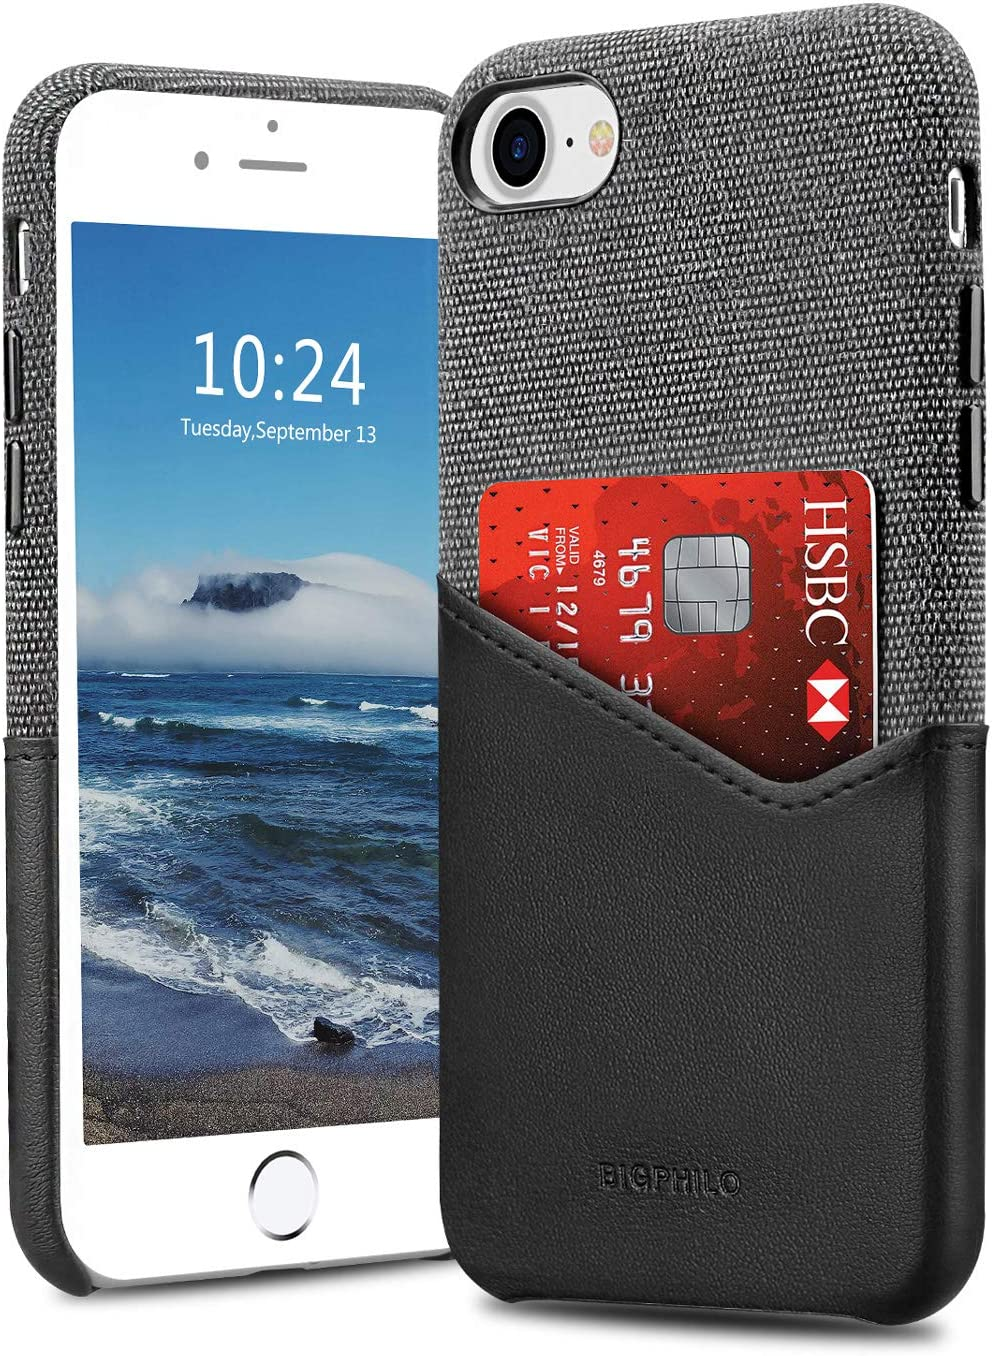 Bigphilo iPhone SE 2020 Case/iPhone 7 Case/iPhone 8 Case with Card Holder, Mix Series Slim Wallet Style Cover, Soft-Touch Fabric with PU Leather Case for iPhone 7 and iPhone 8 (NOT Plus) - Black